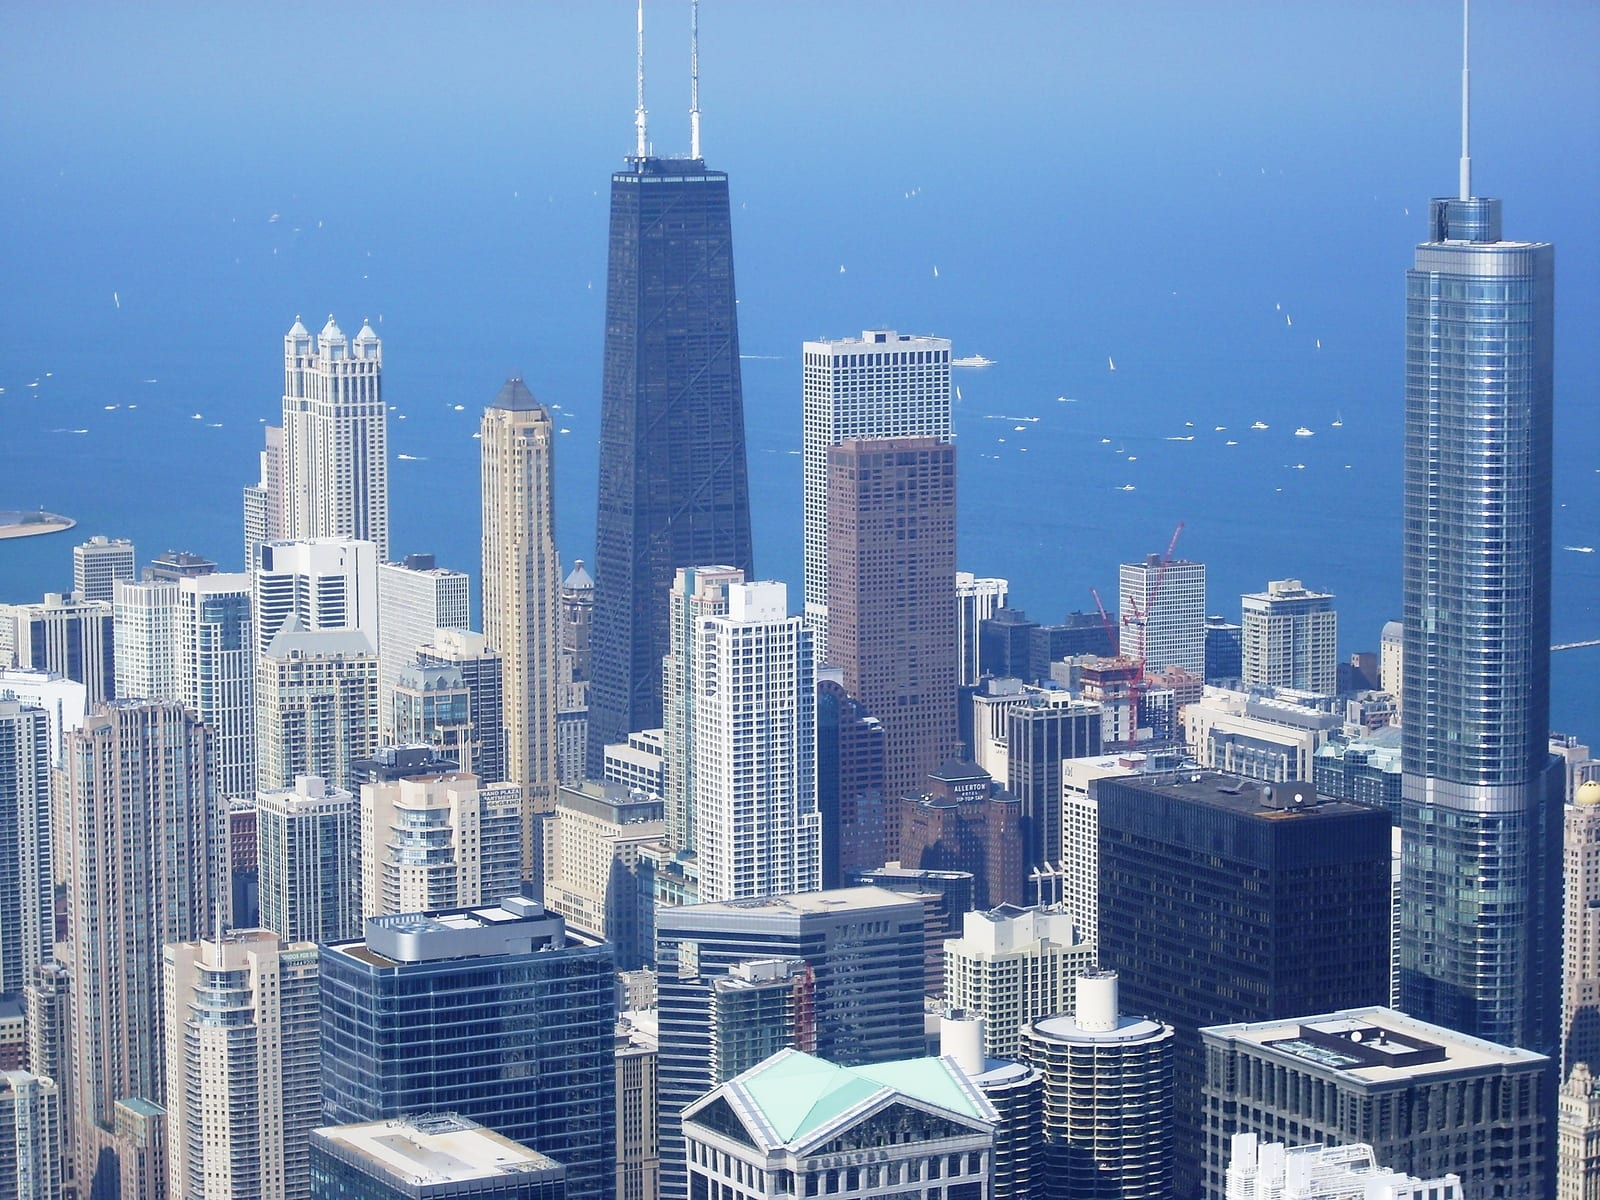 Illinois News: Chicago Mayor Emanuel Joins First Midwest Bank for a Ribbon Cutting at the Company's New Headquarters in Chicago